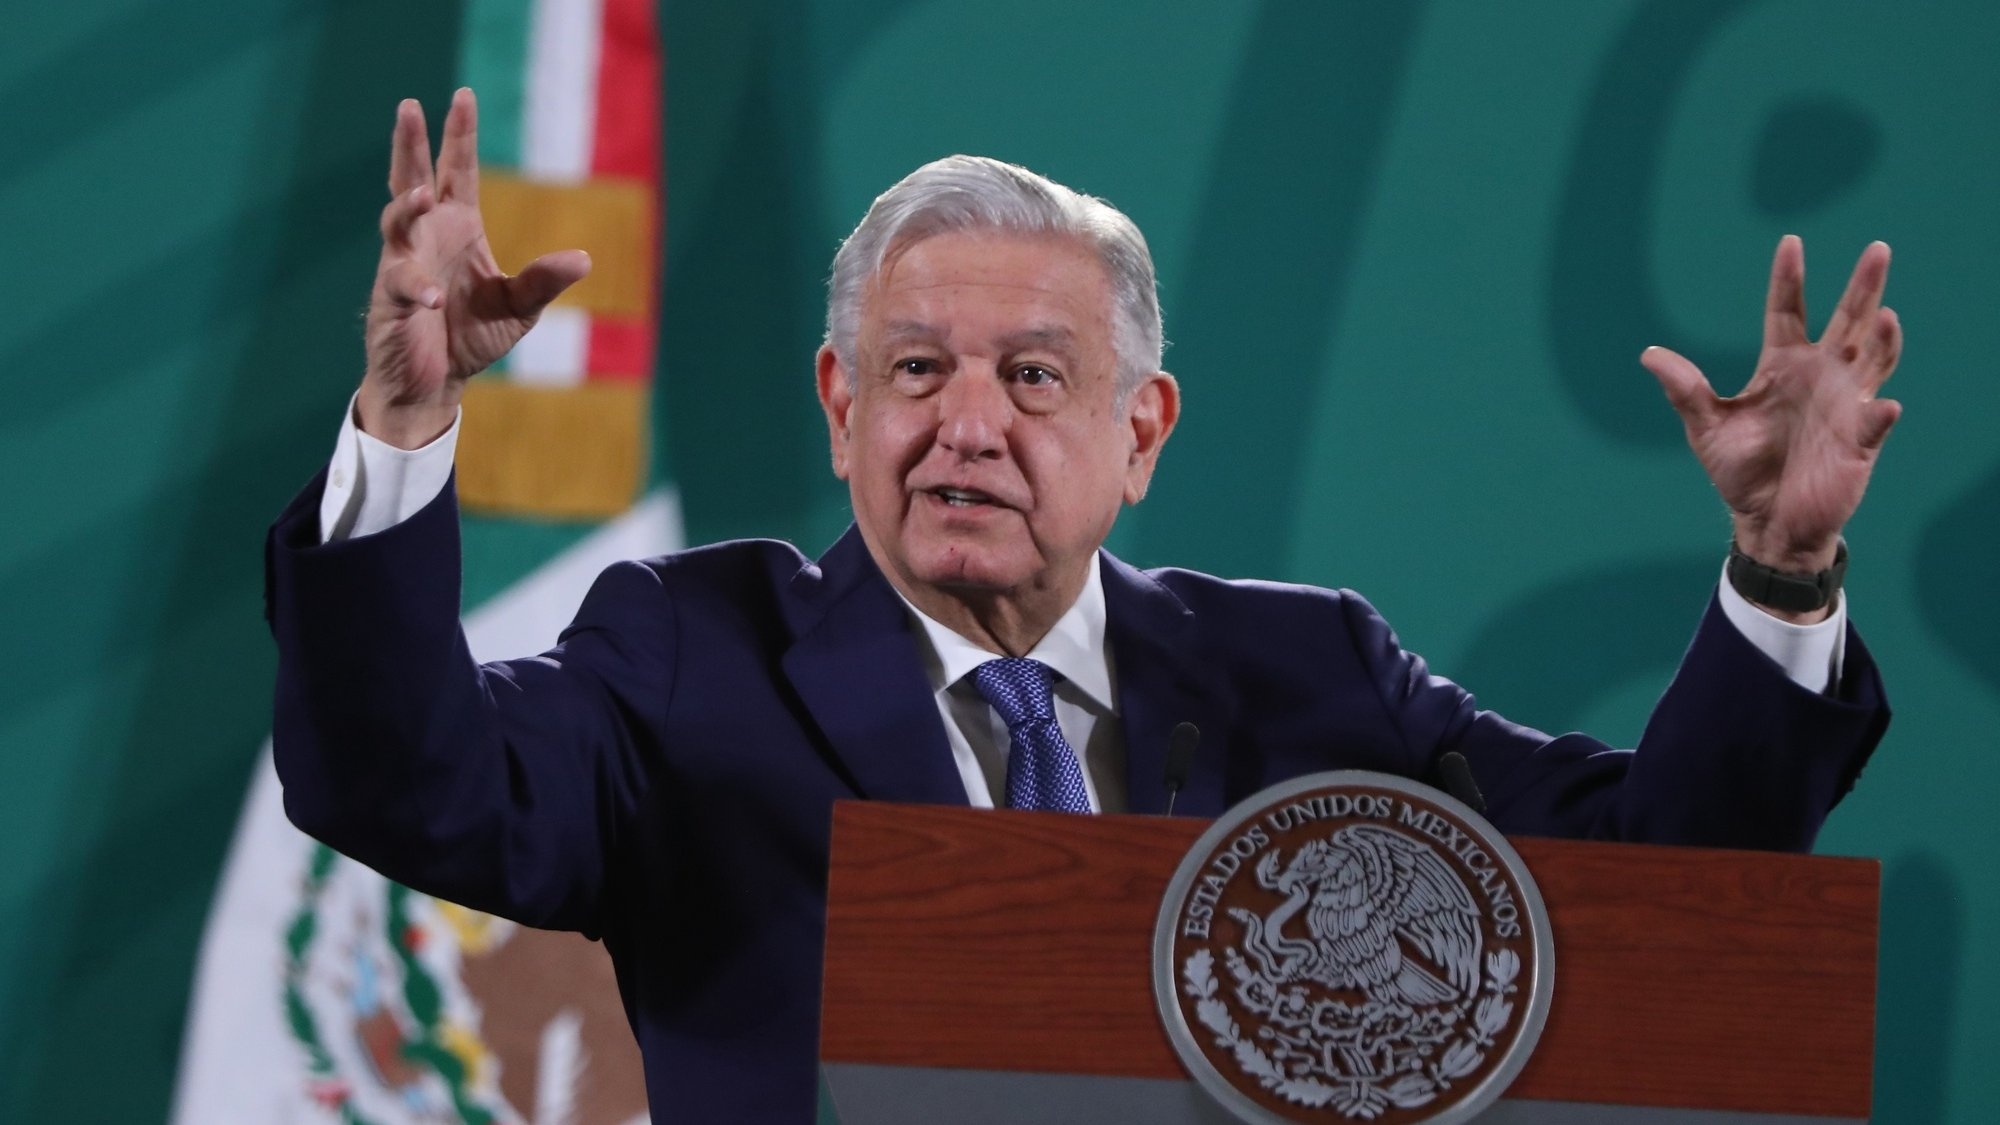 epa09437010 President of Mexico Andres Manuel Lopez Obrador during a morning press conference at the National Palace, in Mexico City, Mexico, 30 August 2021. The generalized return to face-to-face classes started on 30 August in Mexico after a year and a half of schools closed due to the coronavirus pandemic and due to the fear of some families due to the third wave of covid-19 infections that the country has suffered for weeks.  EPA/MARIO GUZMAN